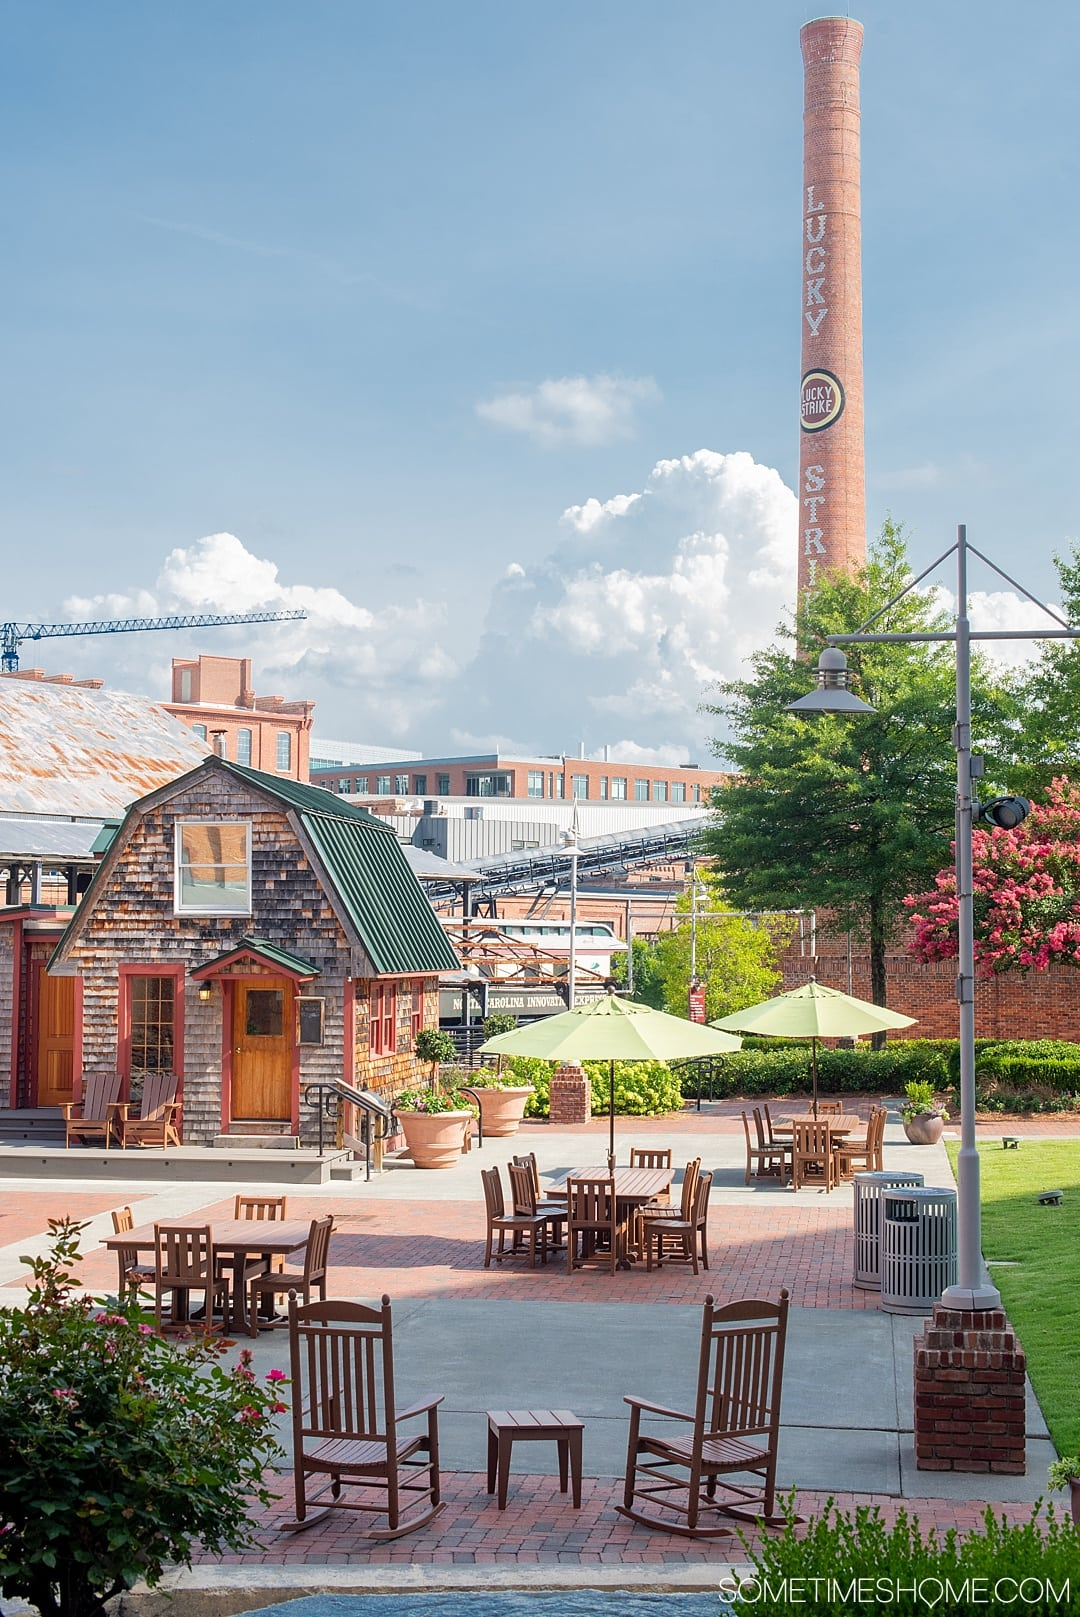 The 12 Best Photography Spots in Durham, North Carolina include art, greenery, a very special part of Duke campus, downtown scenery and more. Click through to read the specifics on historic American Tobacco Campus on Sometimes Home! #DurhamNC #NorthCarolina #DurhamNorthCarolina #Duke #VisitNC #photographyspots #photography